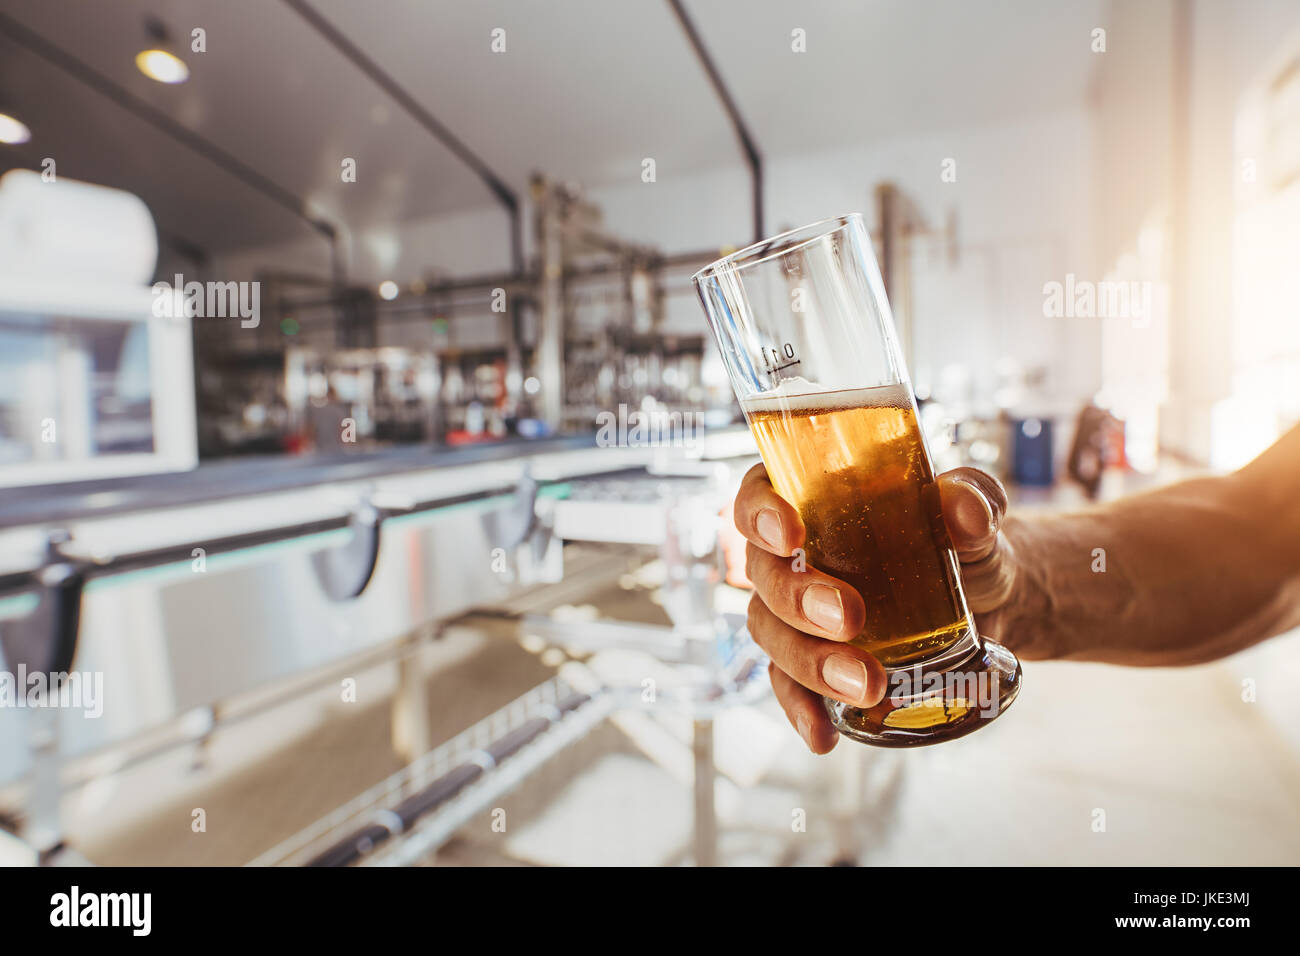 Close up of brewer testing beer at brewery factory. Man hand holding a sample glass of beer. - Stock Image